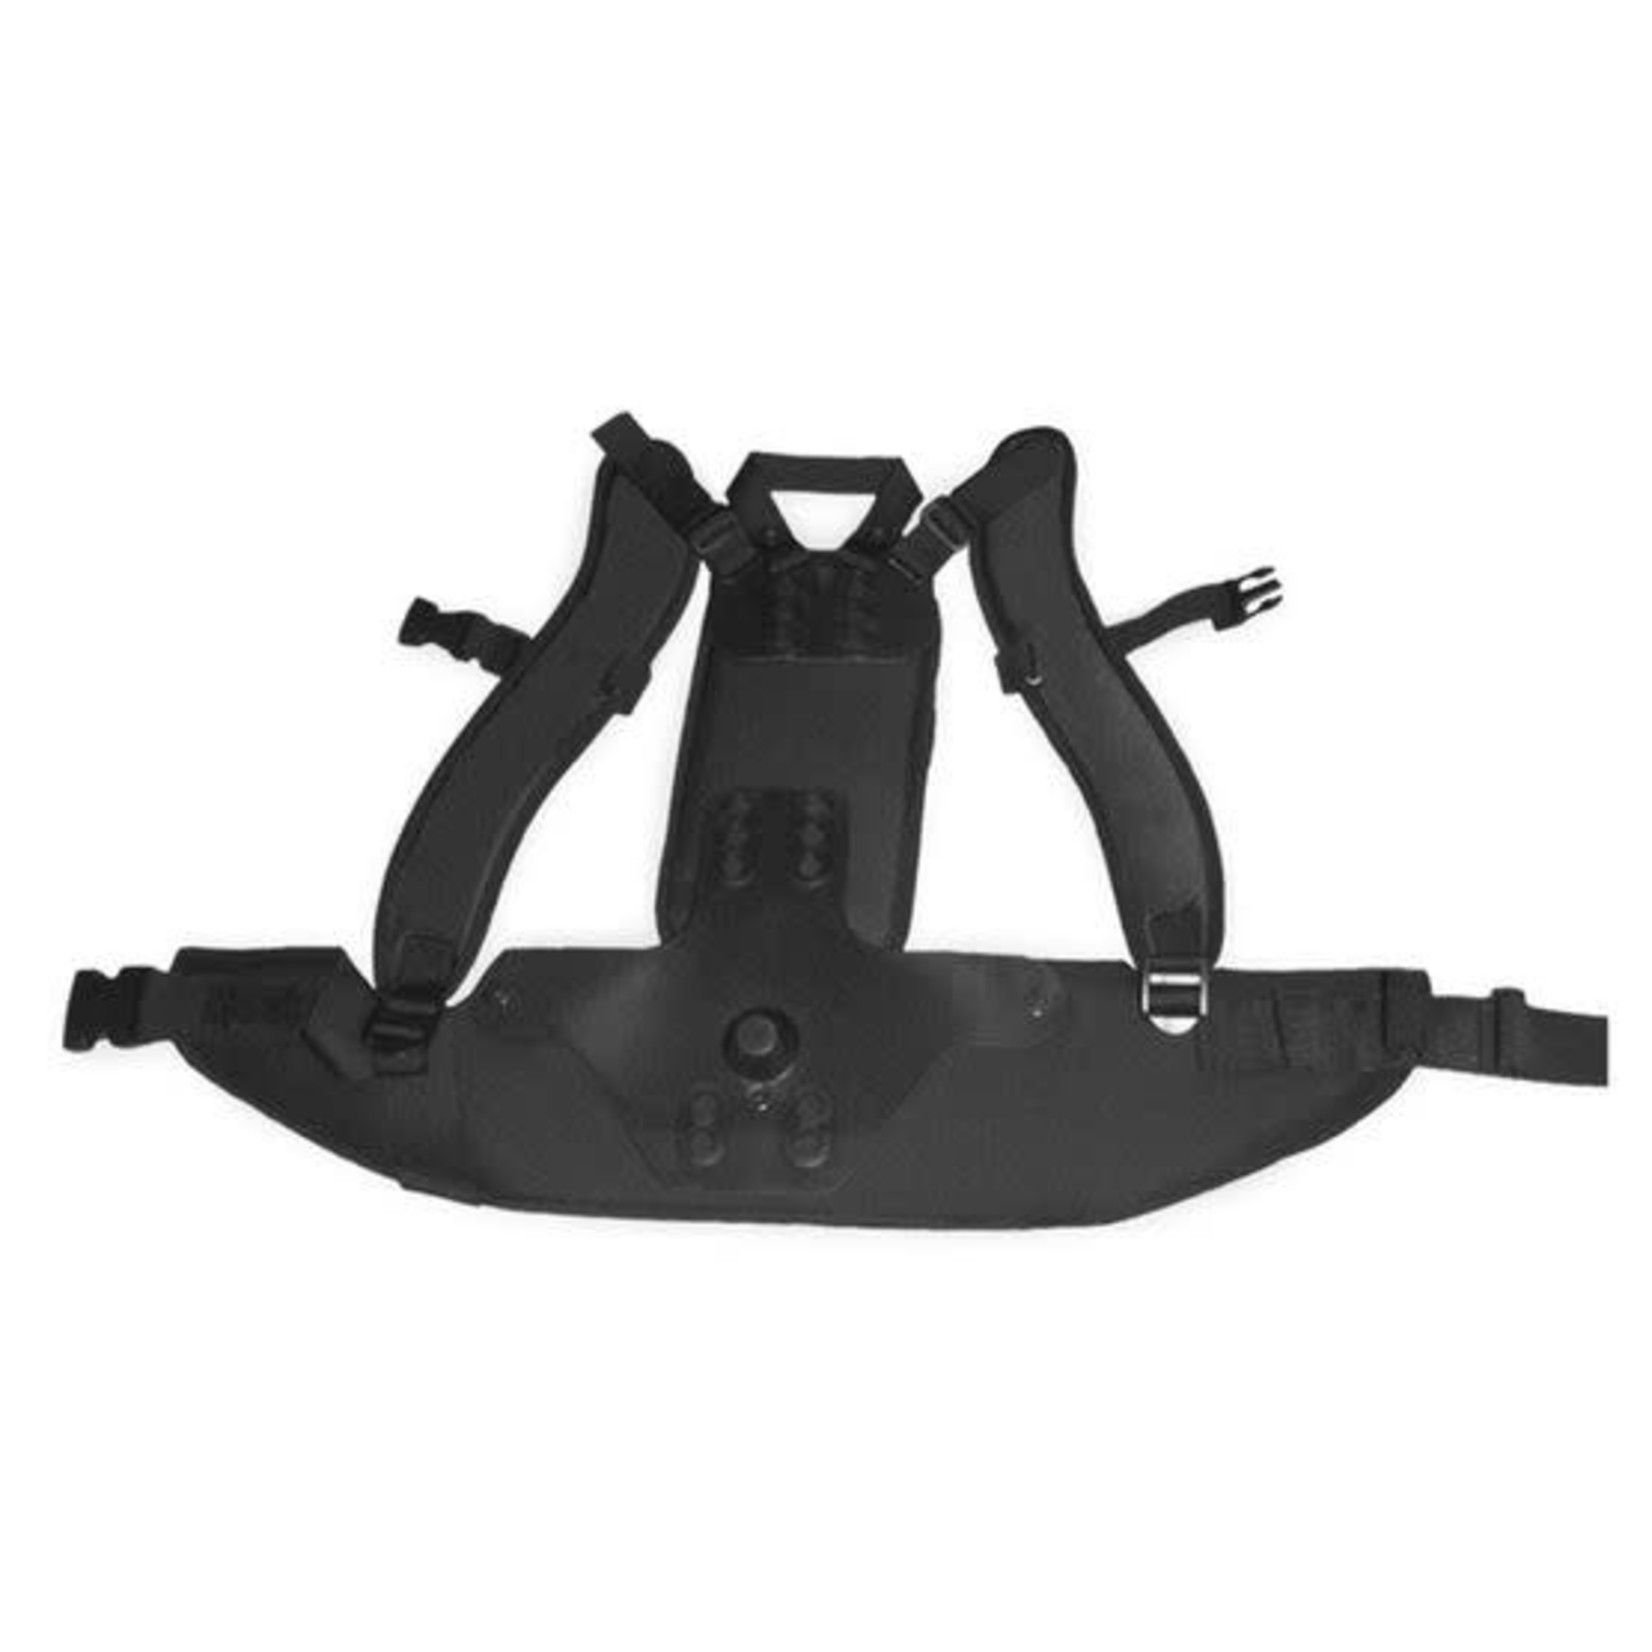 ProTeam Commercial Vacuums Backplate (Black) System Complete includes parts 510738